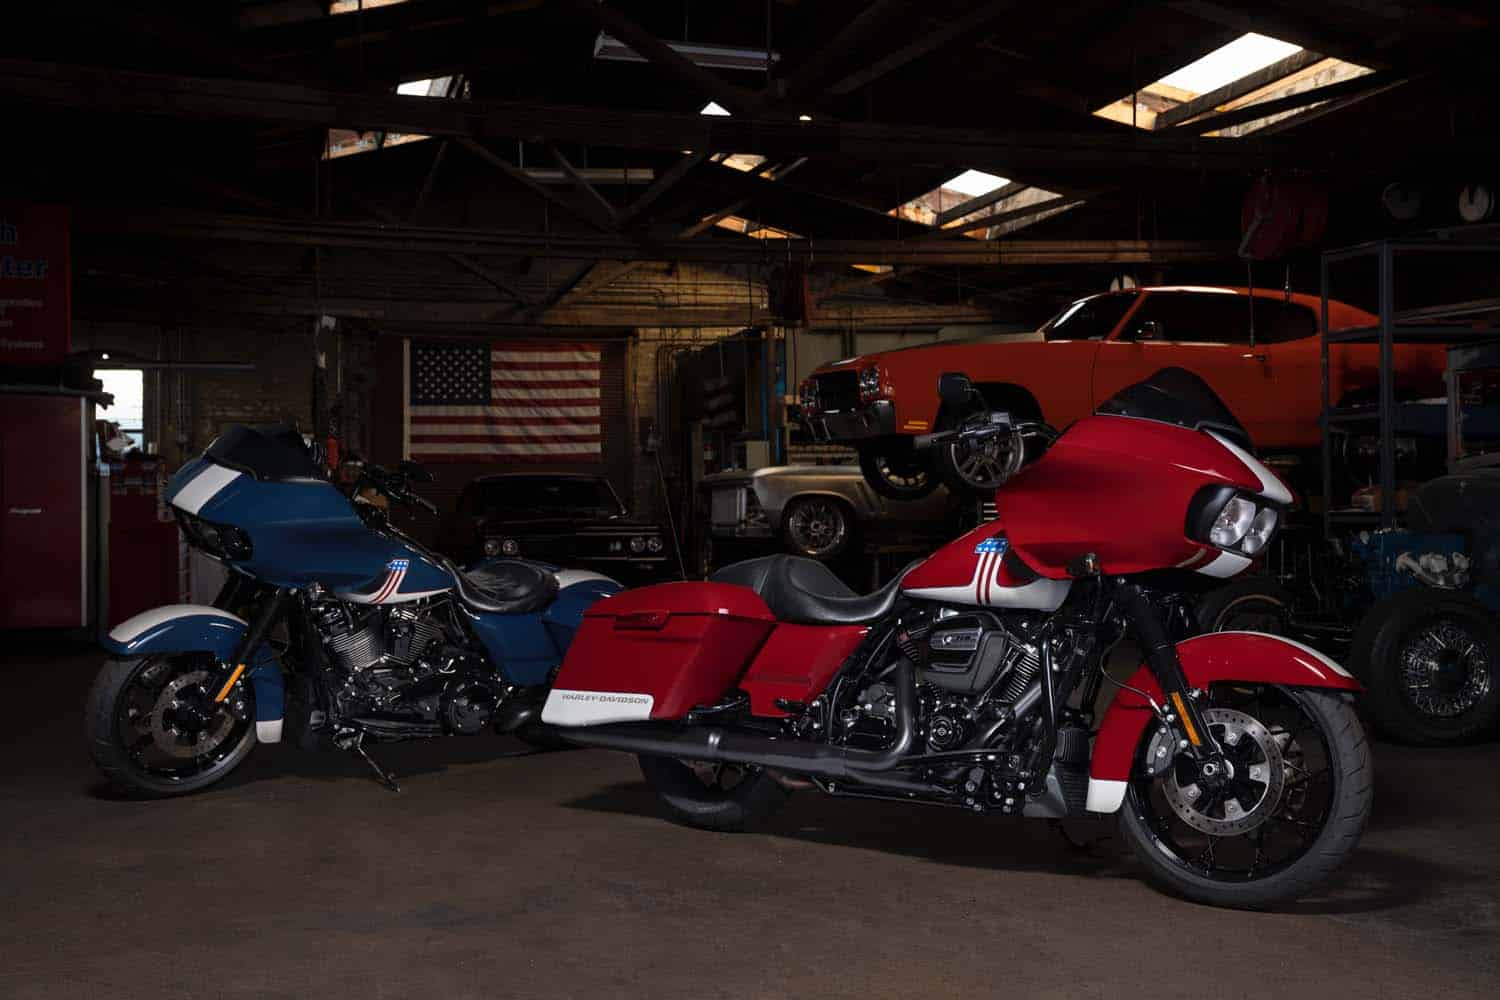 Road Glide Special Blue & Billiard Red and Stone Washed White (Special Edition)